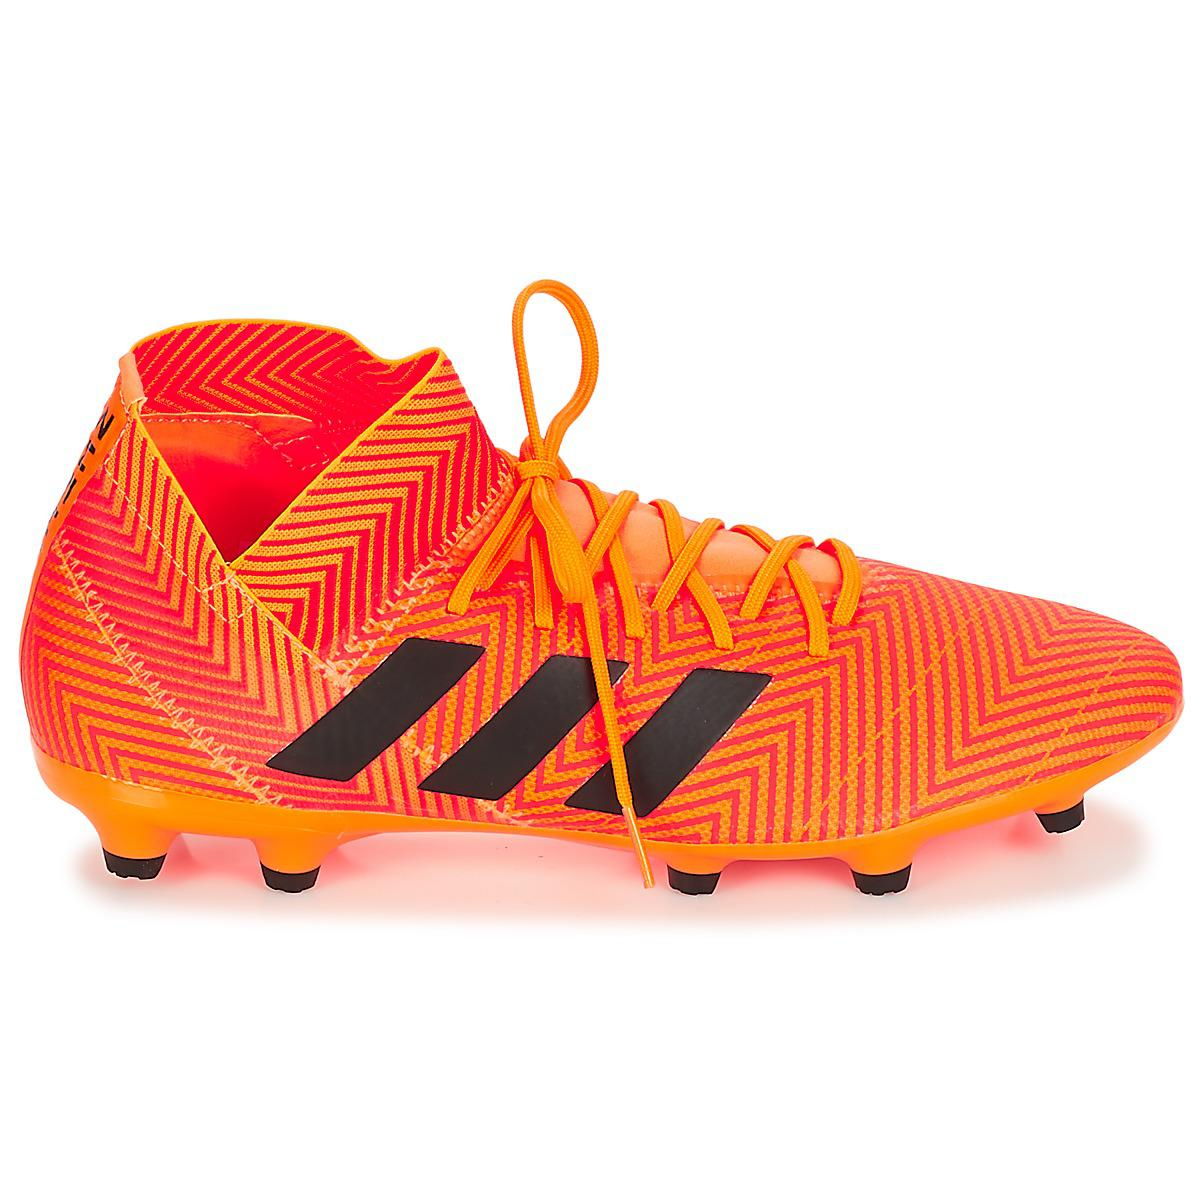 reputable site e1c2e aeefe Adidas - Orange Nemeziz 18.3 Fg Football Boots for Men - Lyst. View  fullscreen